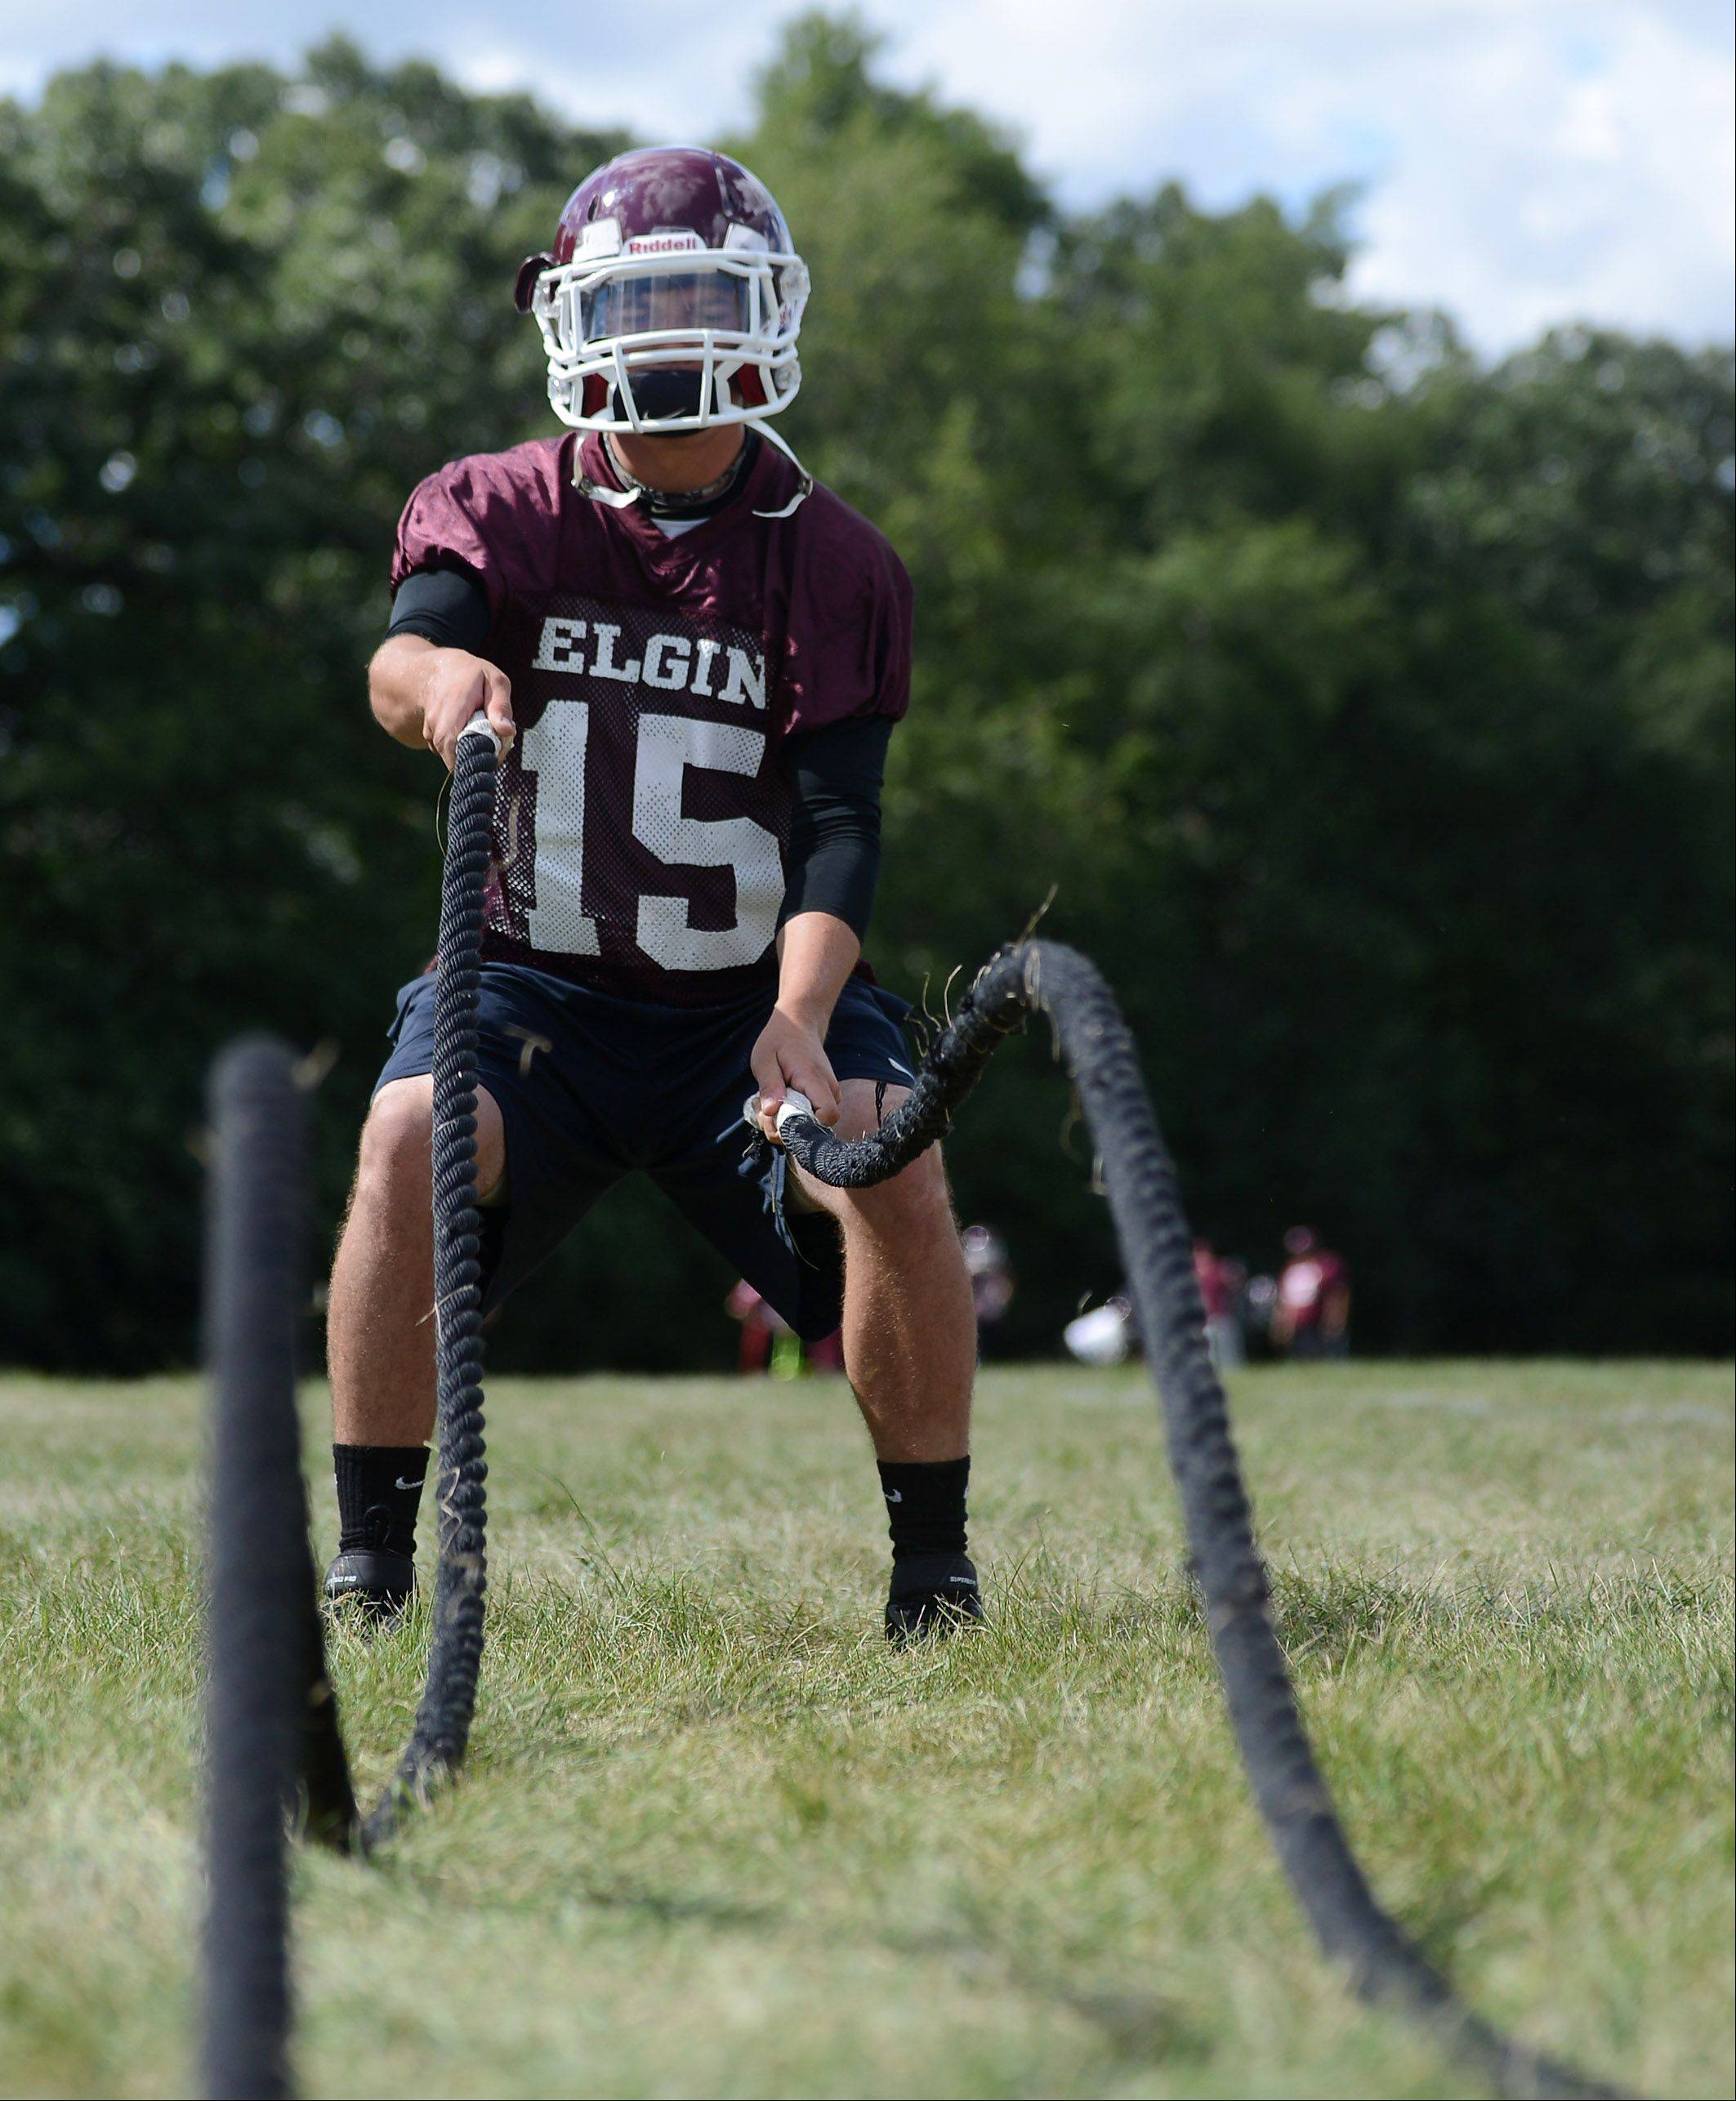 Senior quarterback Ryan Sitter works out during the first day of fall football practice at Elgin High School Wednesday.